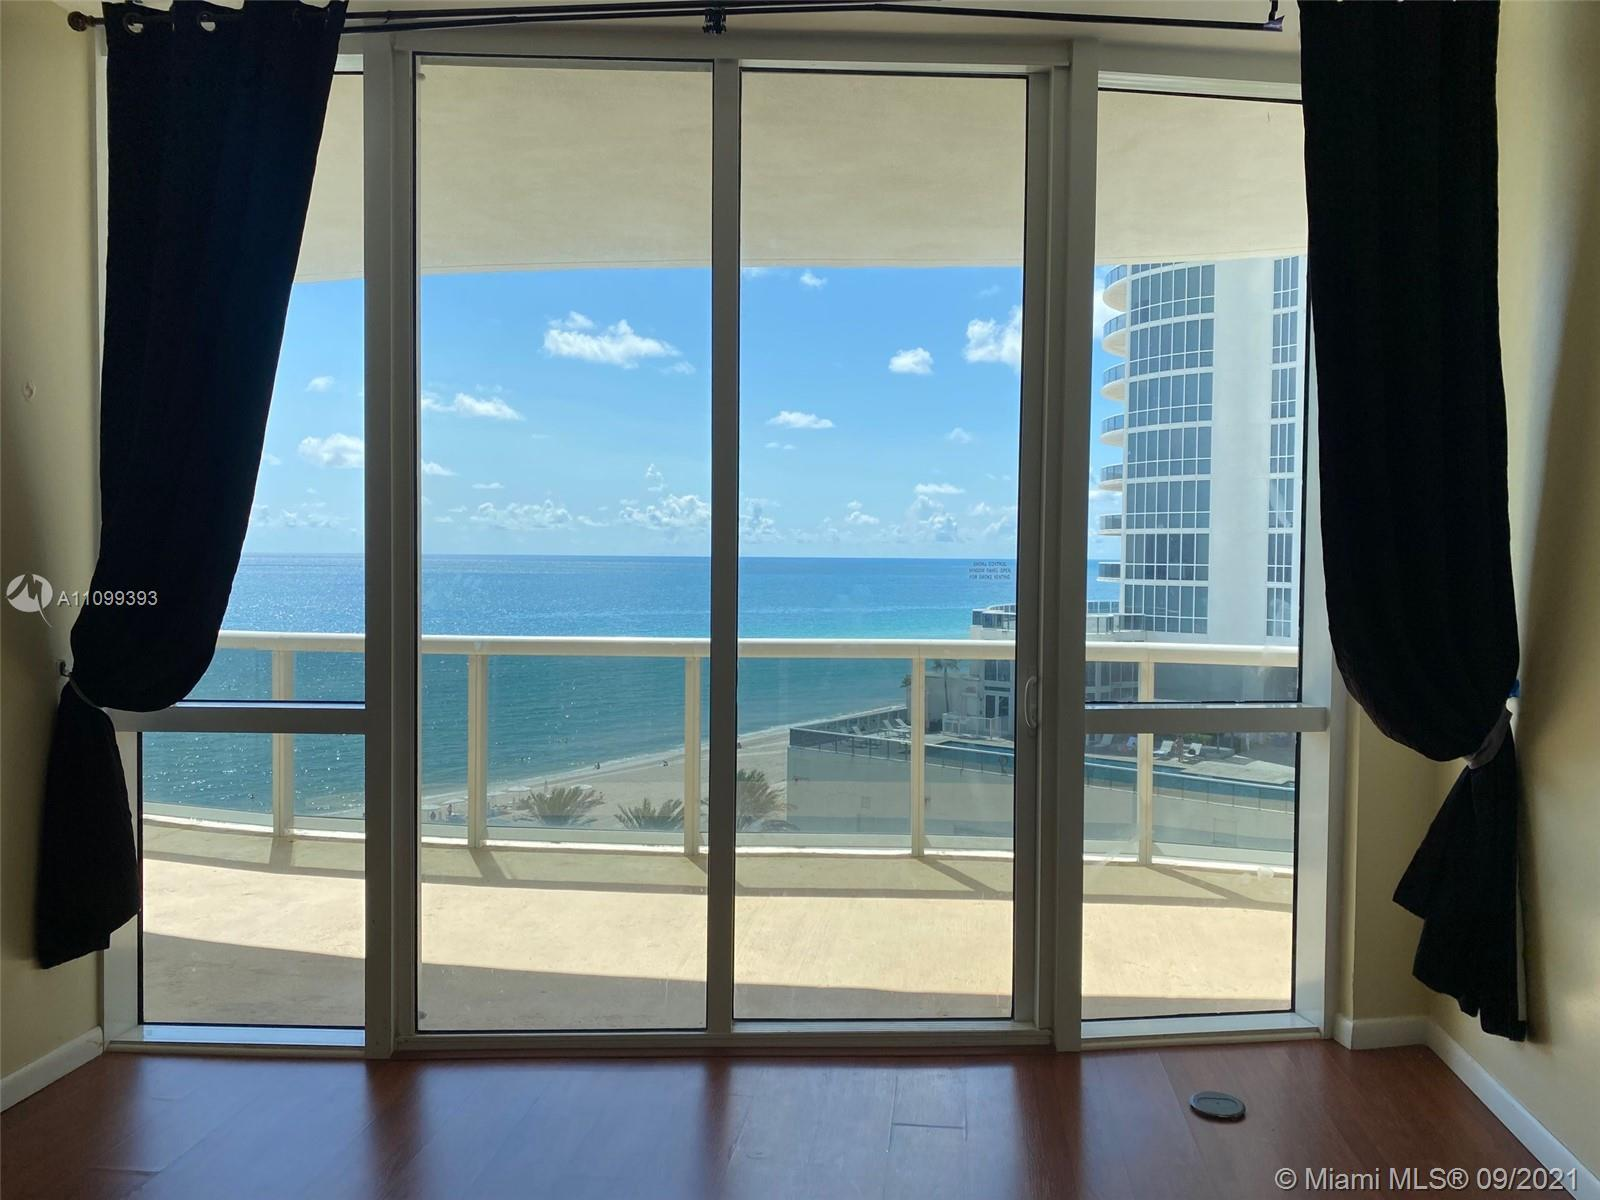 Spacious 2 bedroom plus den apartment with direct ocean view. Luxury service with amazing amenities.